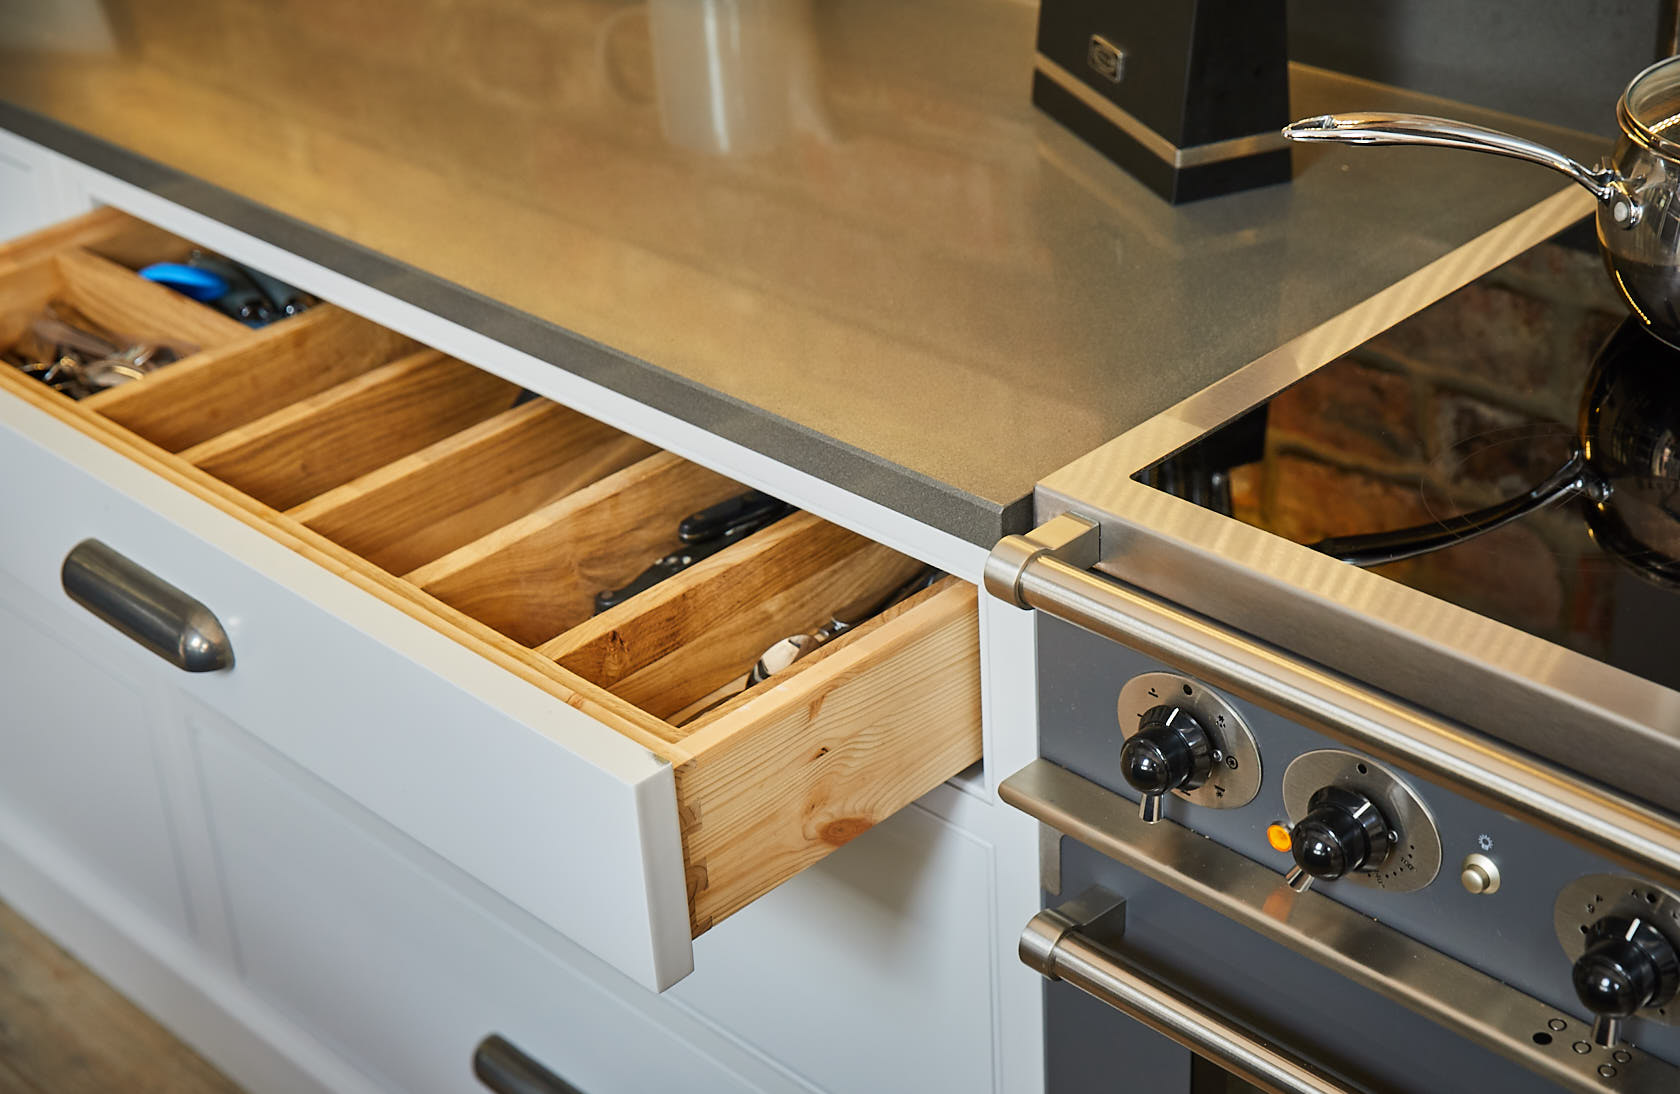 Bespoke kitchen drawer with dovetail box made from solid pine